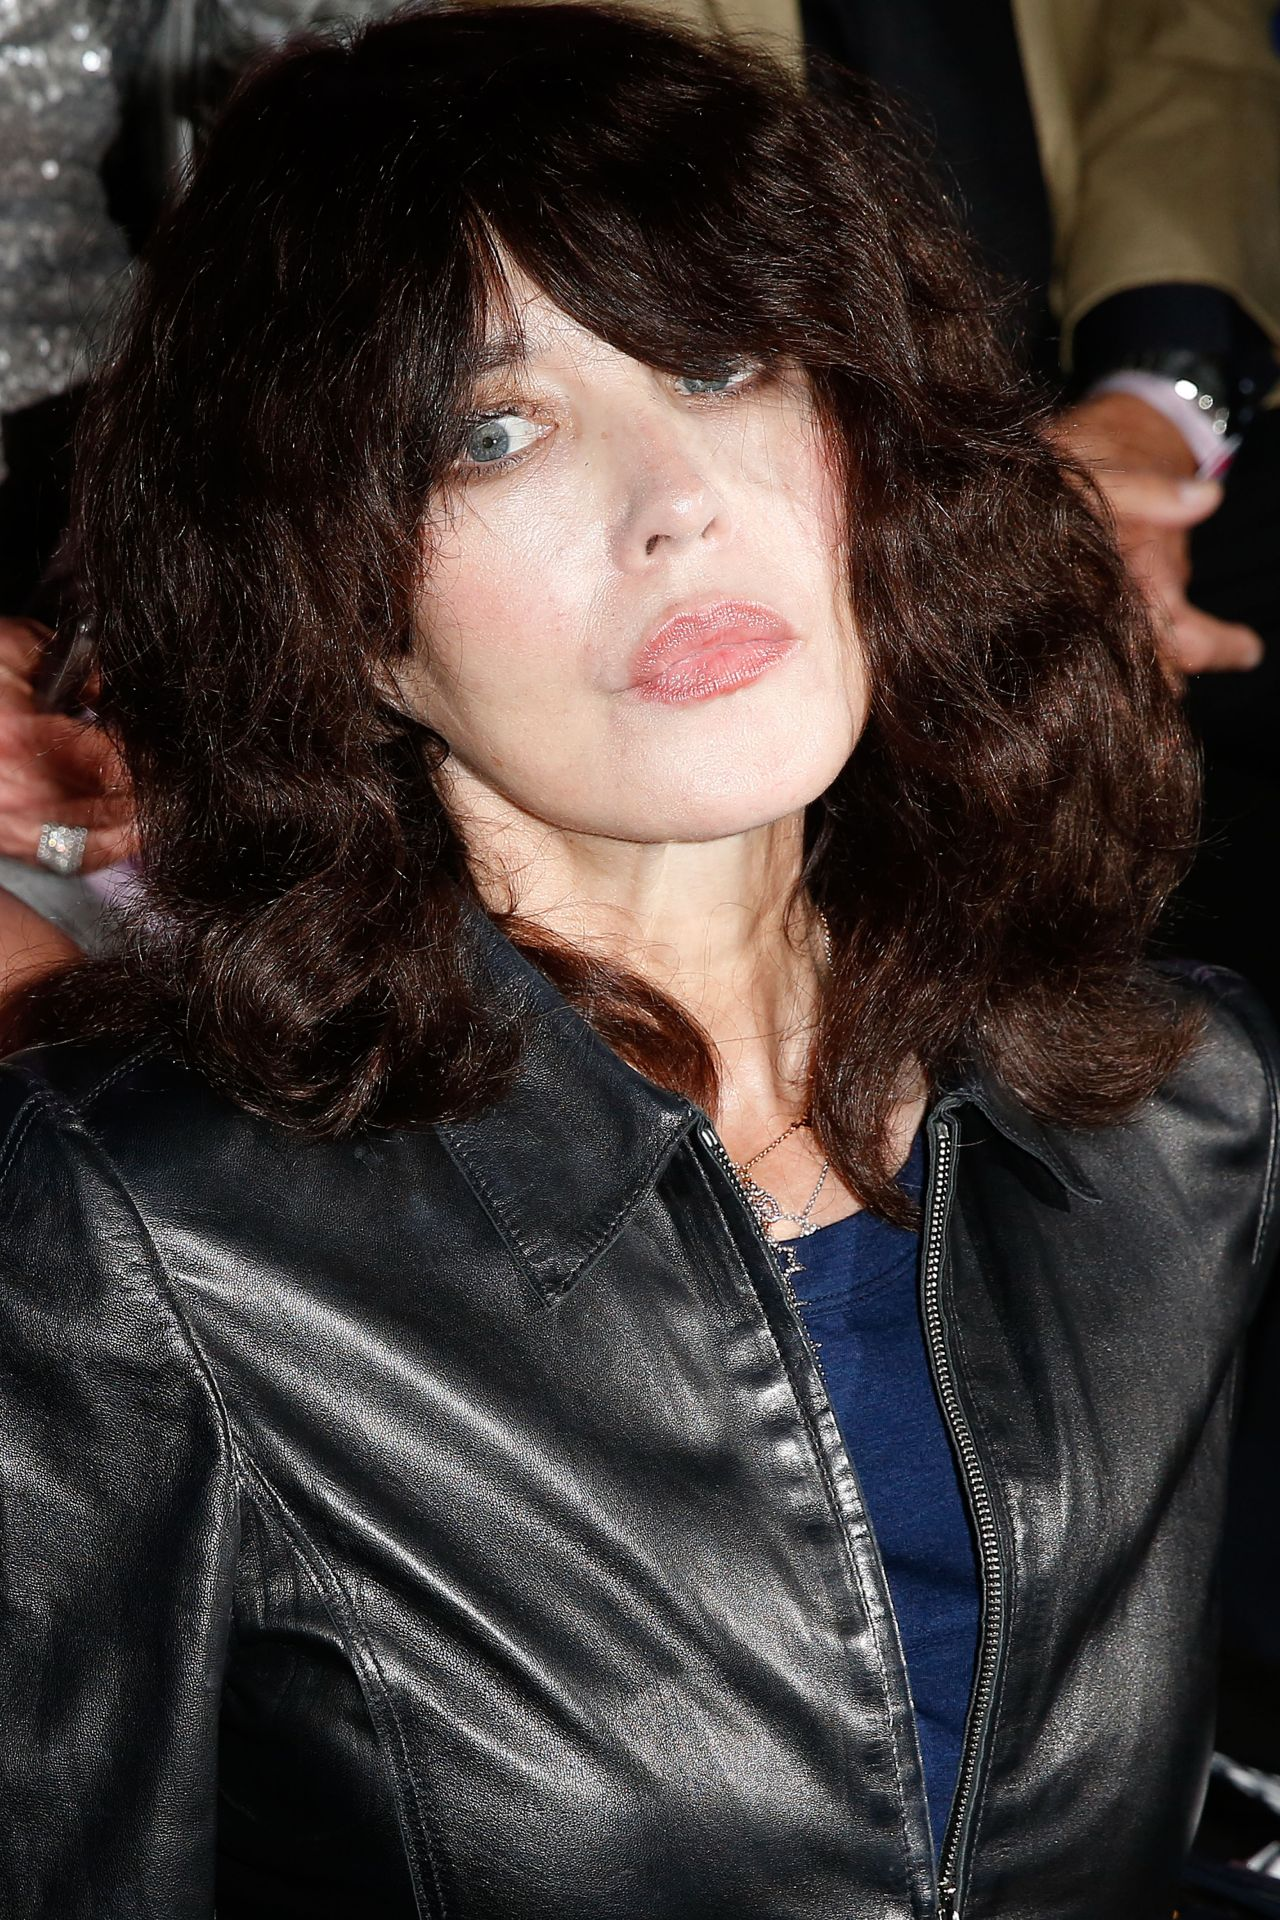 isabelle adjani etam fashion show in paris 09 26 2017. Black Bedroom Furniture Sets. Home Design Ideas